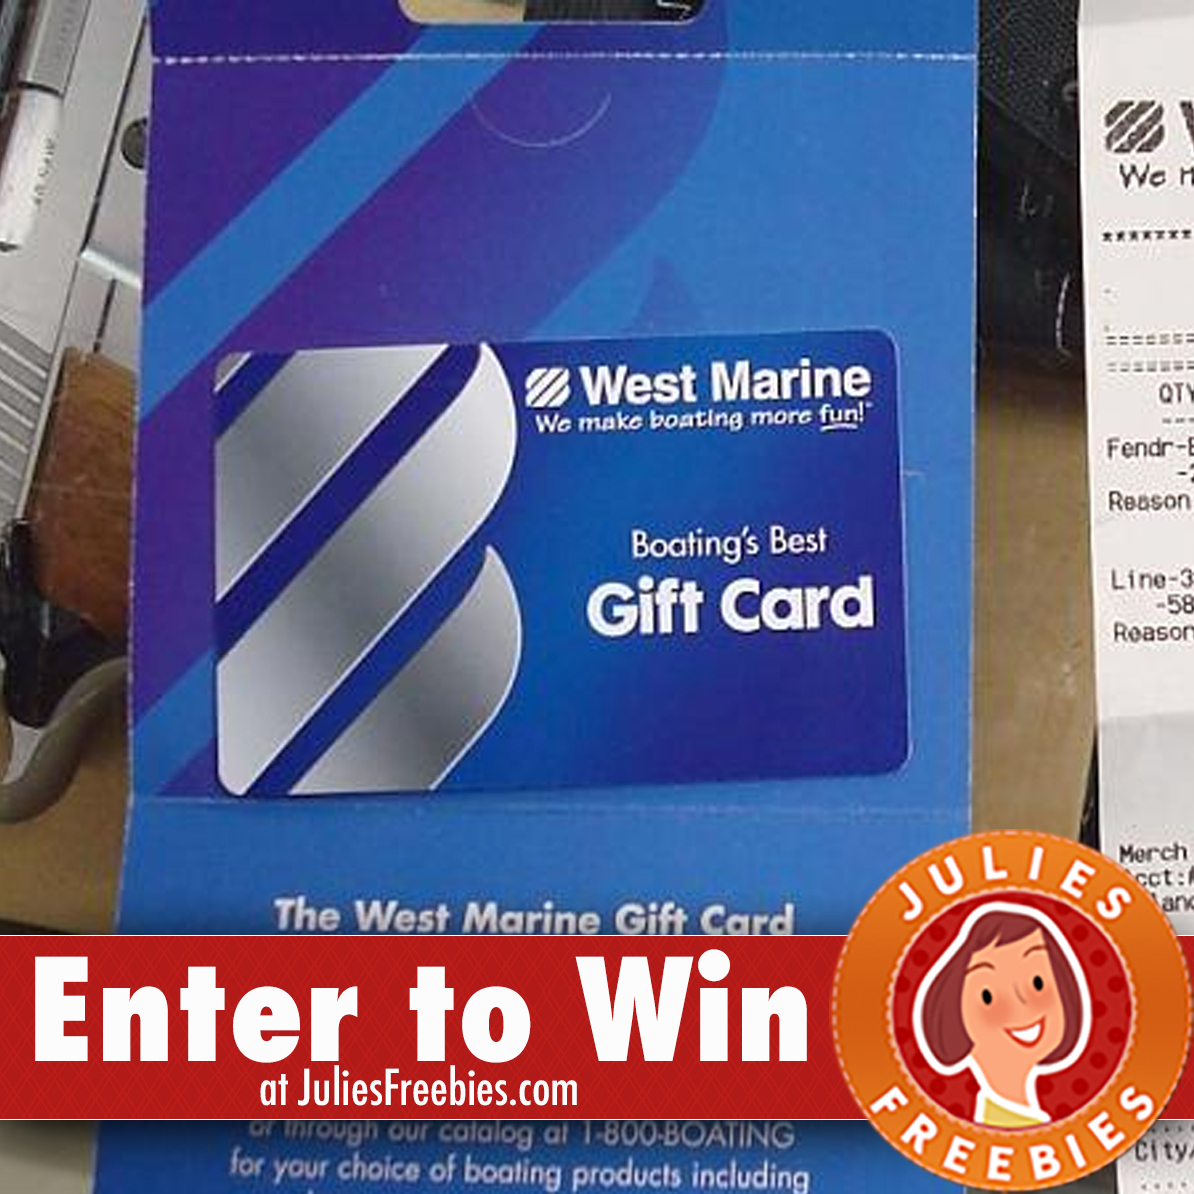 Win a $500 West Marine Gift Card - Julie's Freebies